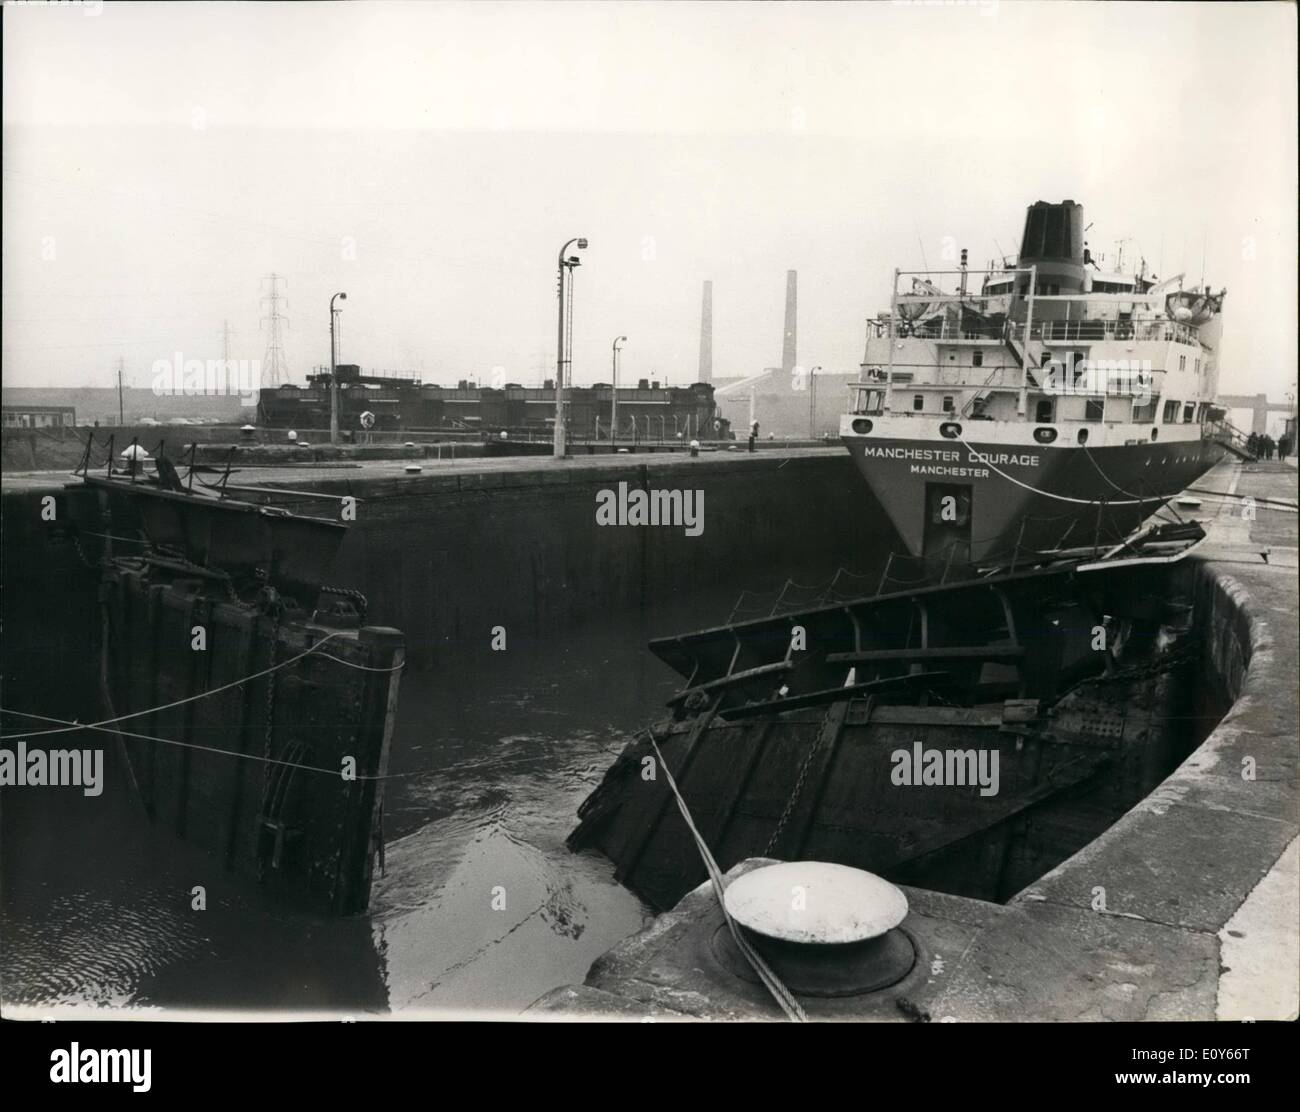 Mar. 03, 1969 - Ship Jammed In Manchester Ship Canal Is Freed: The ''Manchester Courage'', 12,000-ton, which was on her way to Montreal when she rammed giant look gates in the Manchester Ship Canal at Irlam, Lancashire - only eight miles out of Manchester - was freed yesterday, but still lock-bound until the debris of the shattered gates is cleared. The ship was outward bound with a cargo of 400 containers. Until the lock is repaired other ships will not be able to leave or enter the port of Manchester. Photo shows The ''Manchester Courage'' - showing the damaged lock gates in foreground. - Stock Image